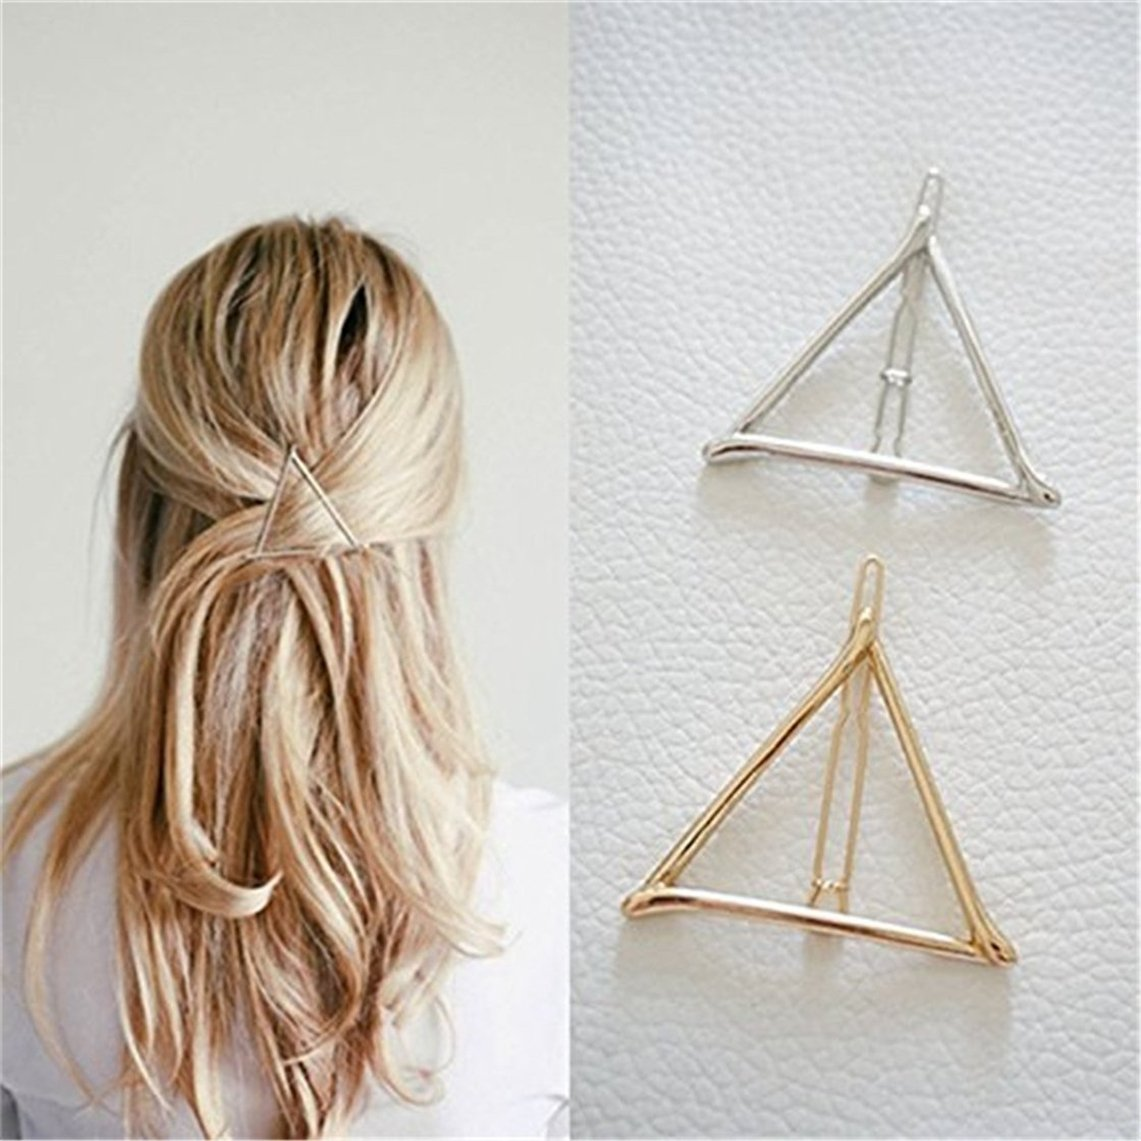 UNKE Women's Hollow Triangle Geometric Metal Hairpin Hair Clip Clamps Accessories Styling Jewelry